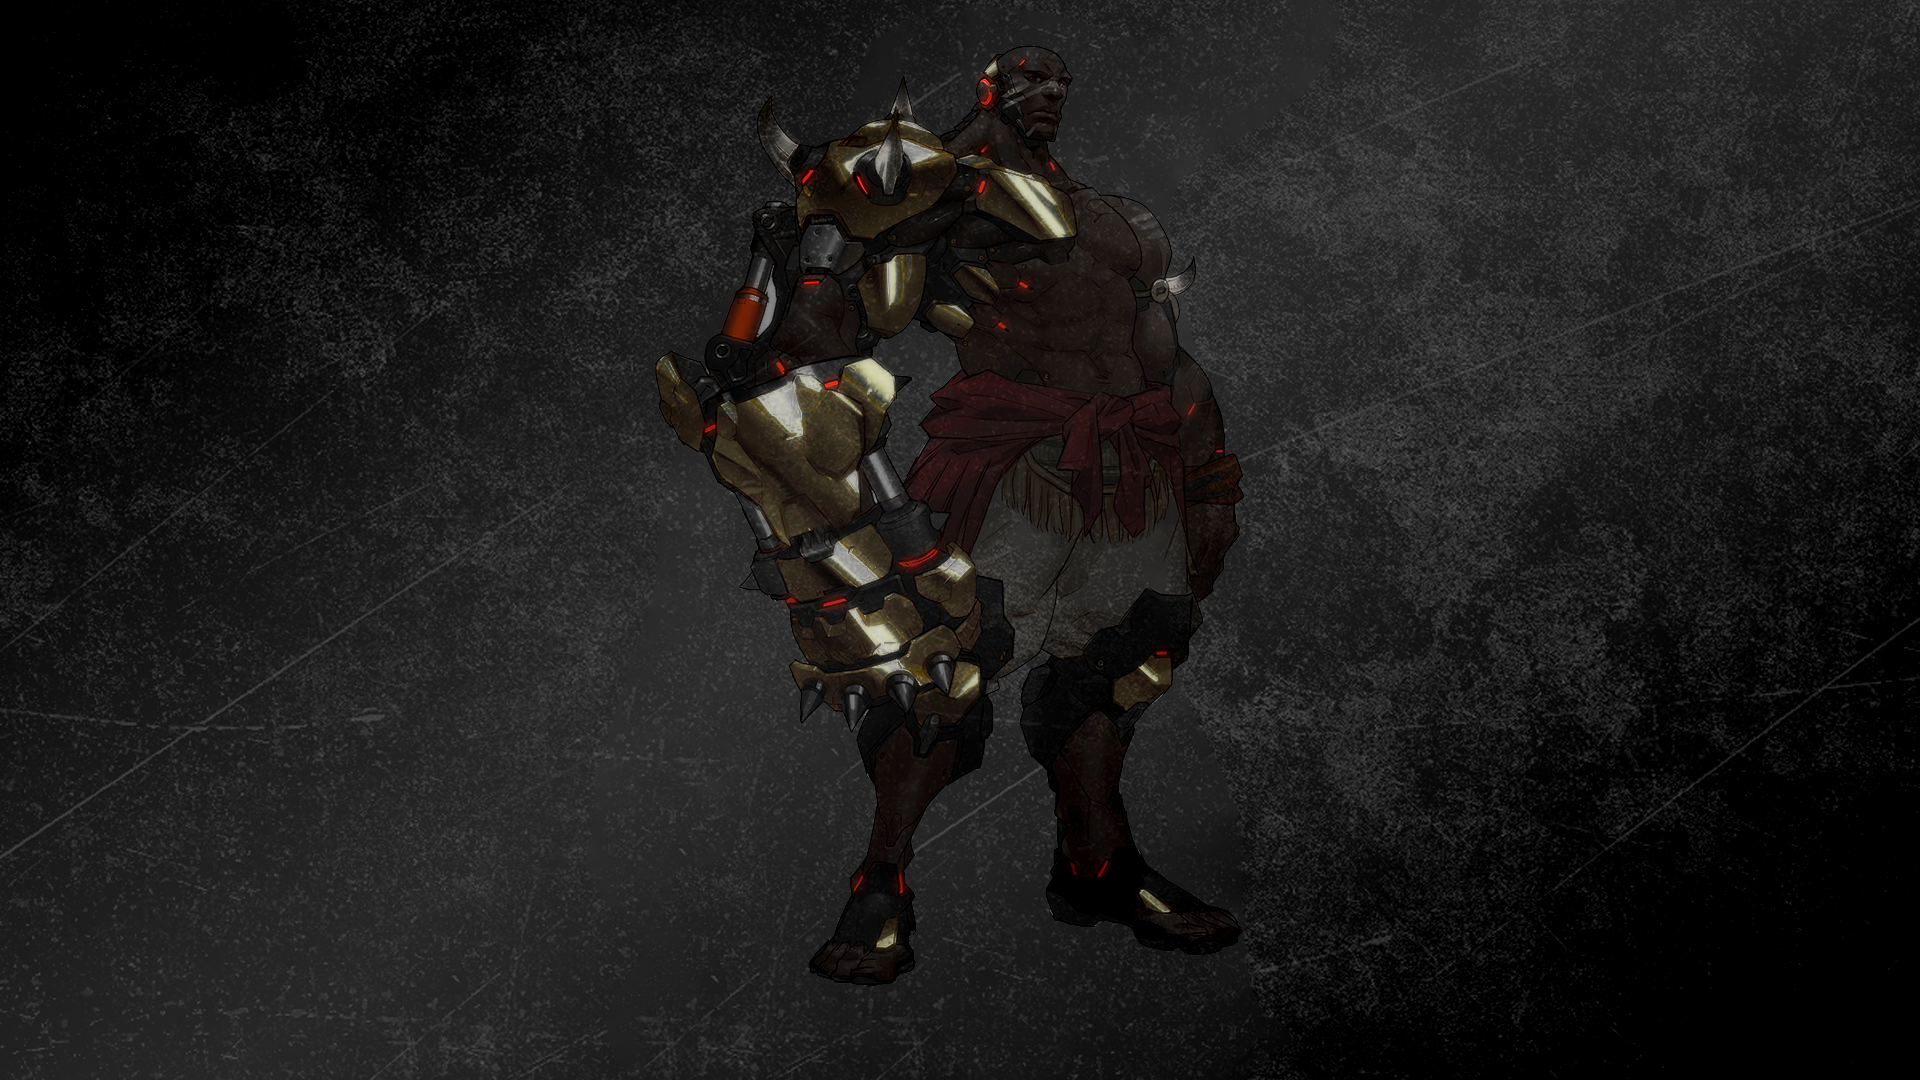 General 1920x1080 Overwatch Doomfist (Overwatch) PC gaming dark